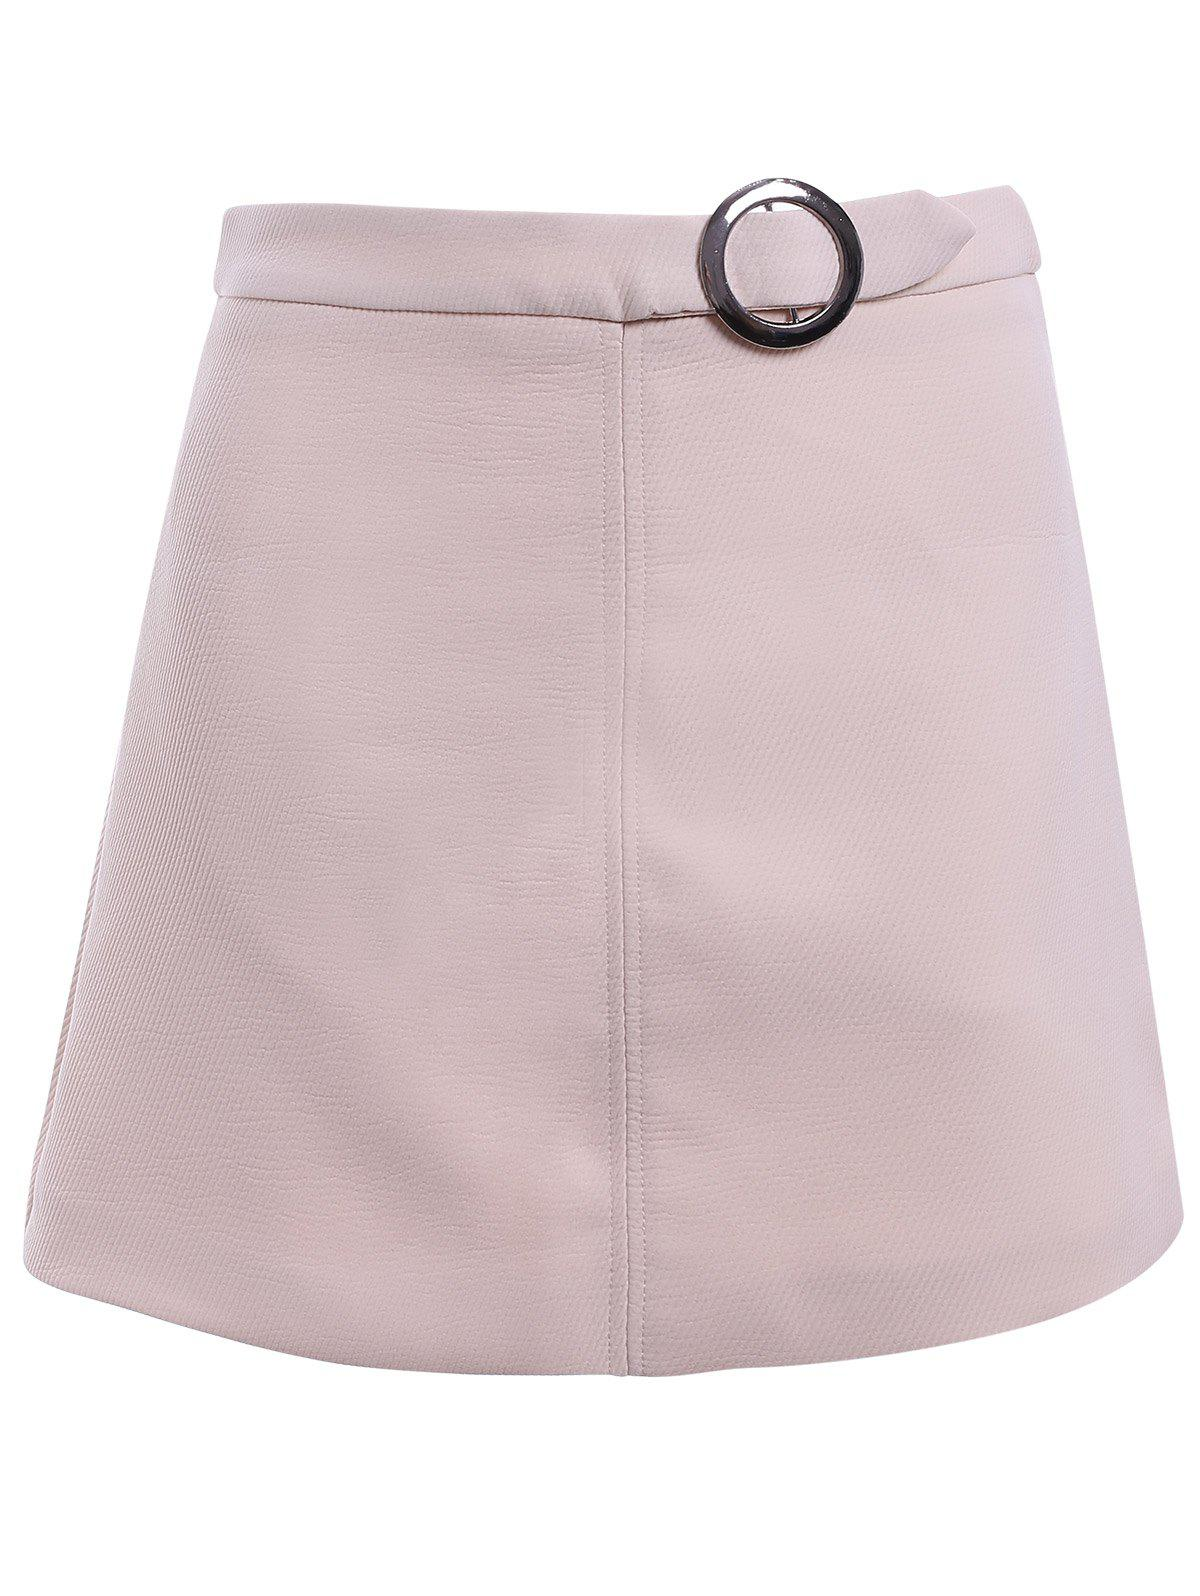 Simple Design Women's A-line Round button Midi Skirt - APRICOT M